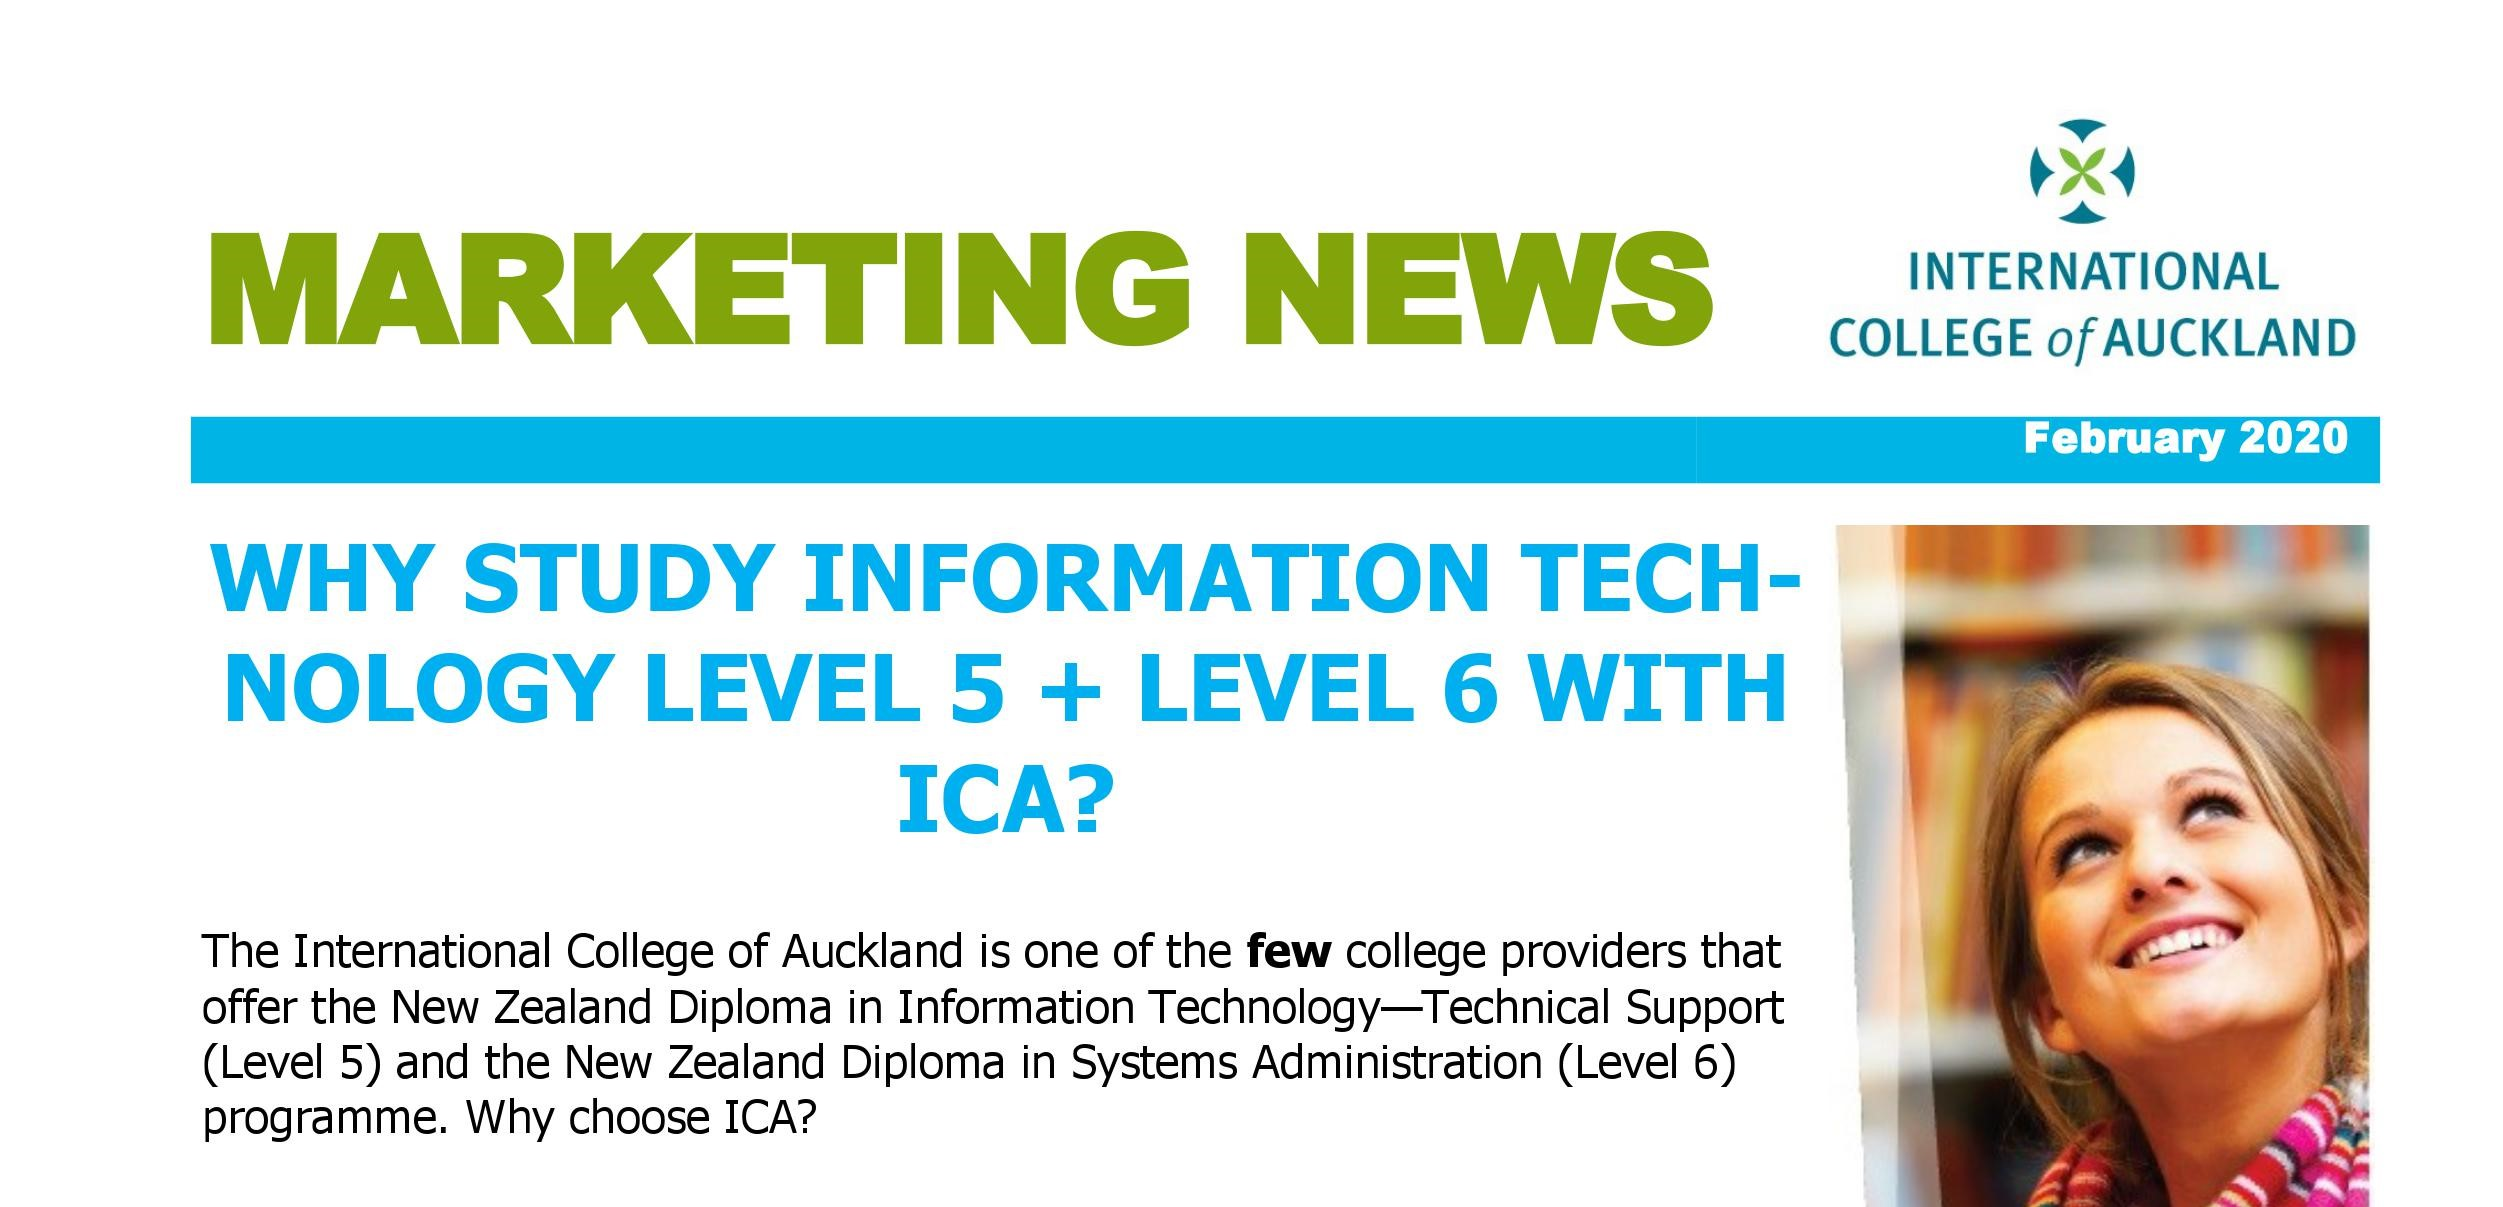 Why Study Information Technology Level 5 + Level 6 With ICA?